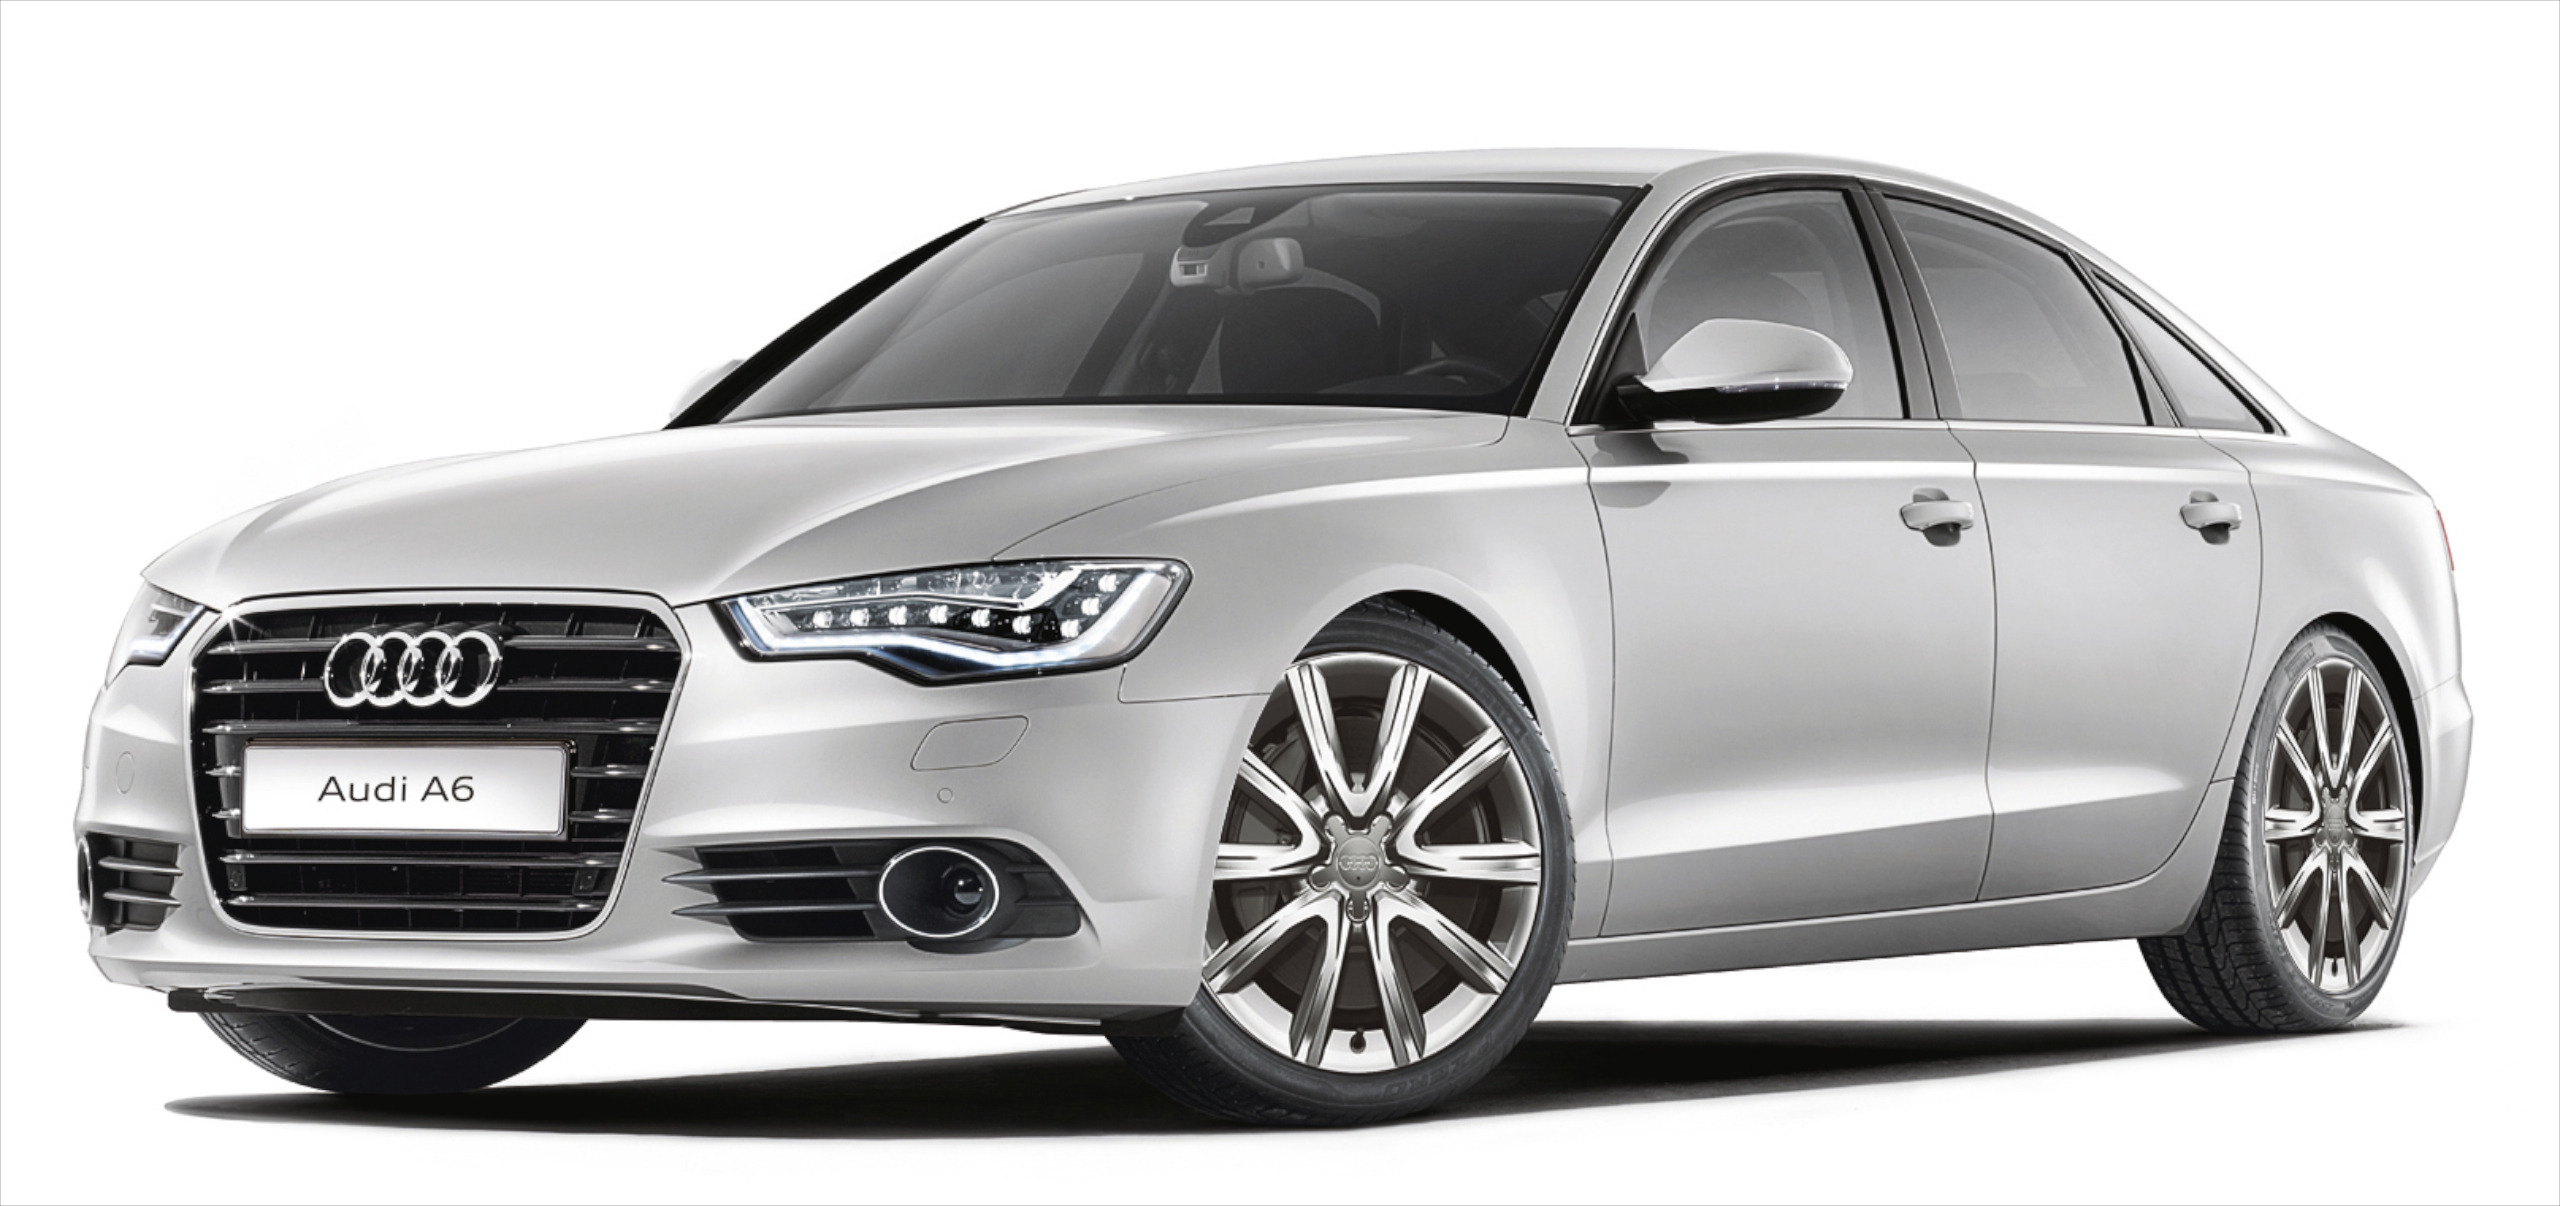 Enhanced Audi A6 2 0 Tfsi Introduced Rm375k Image 256623